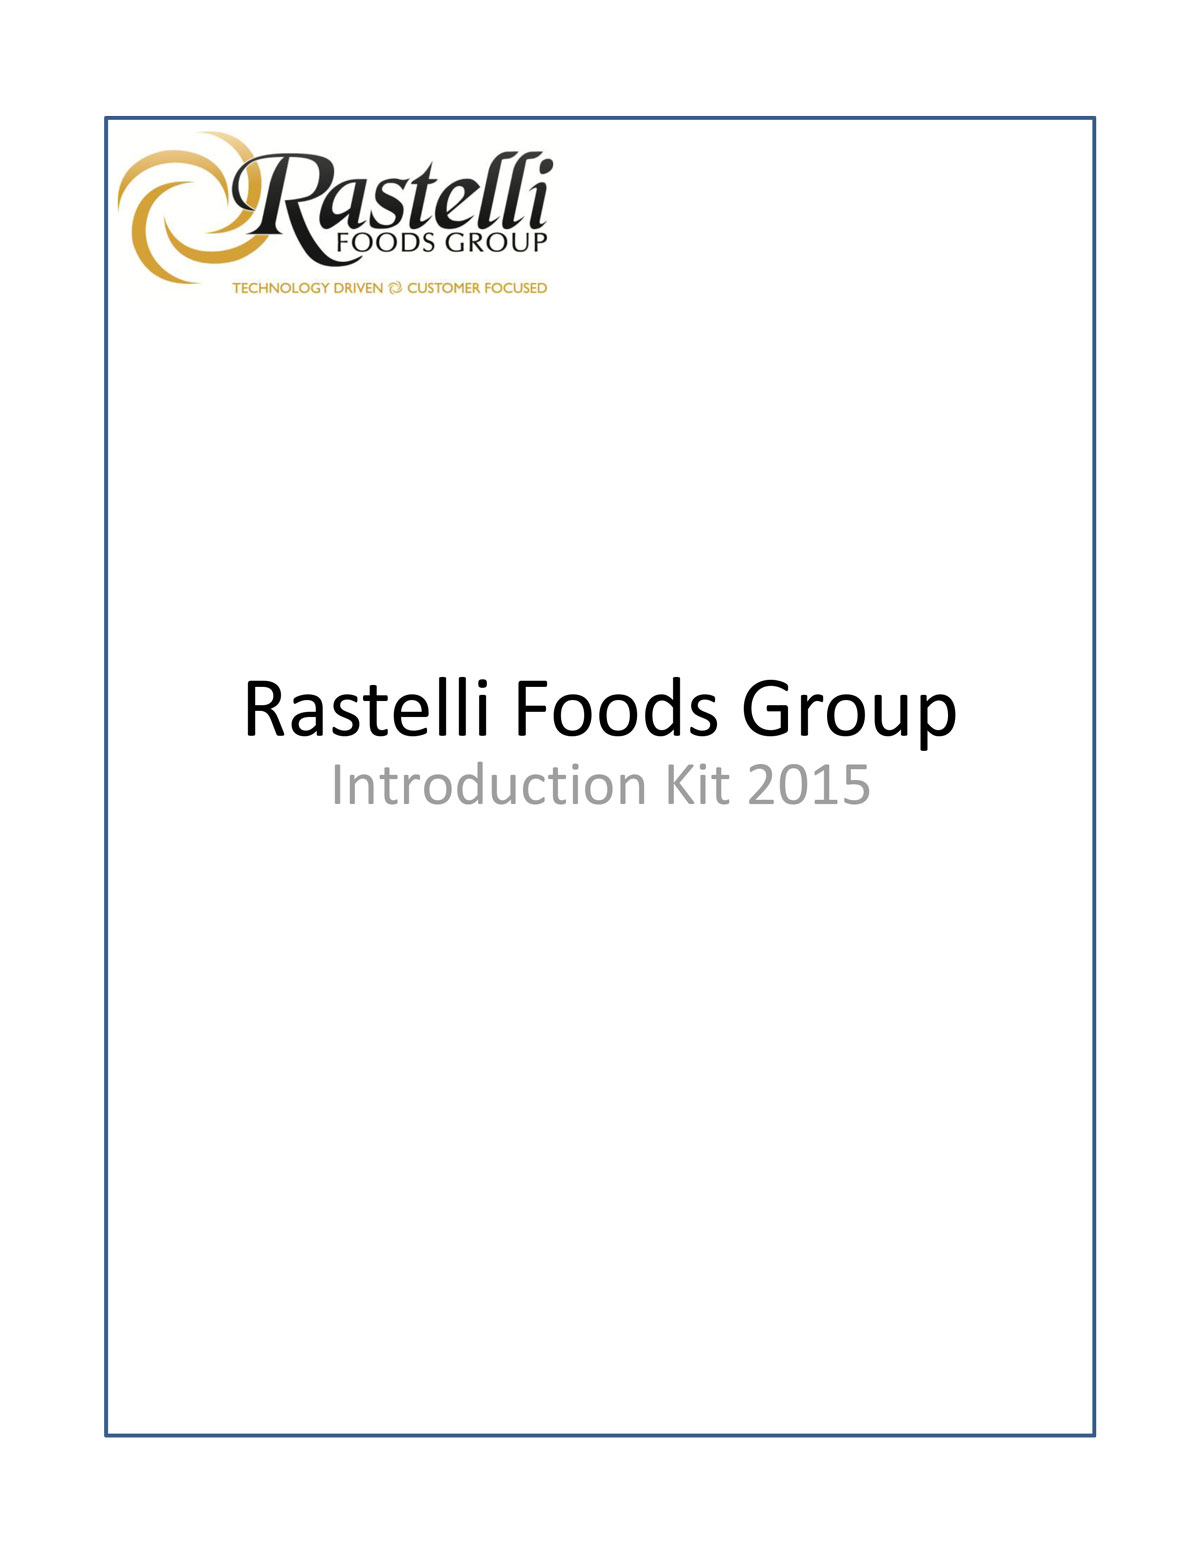 Rastelli Foods Group Introduction Kit